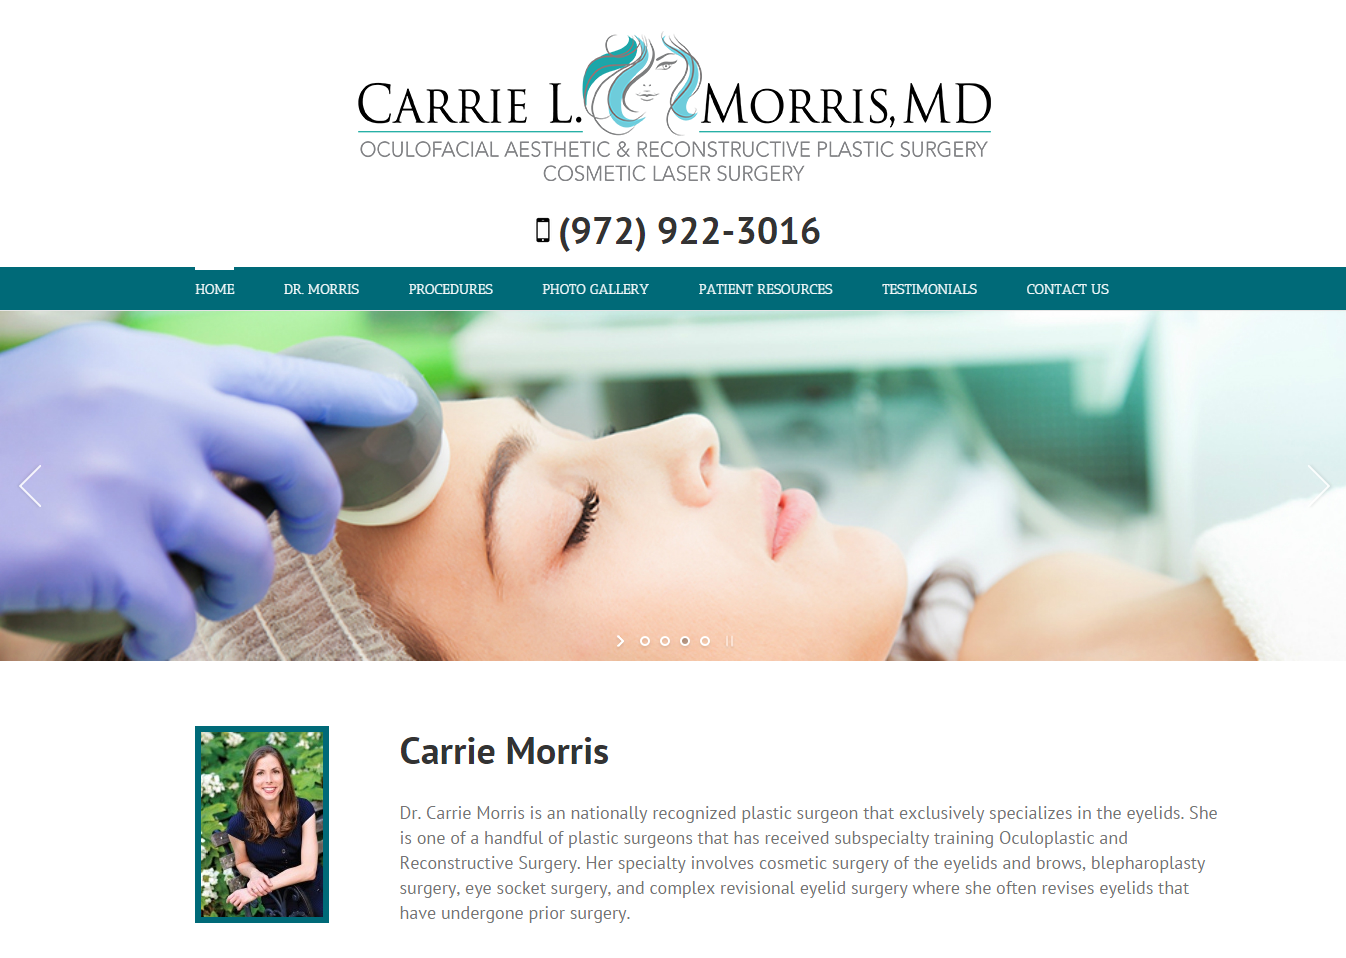 carrie morris website design